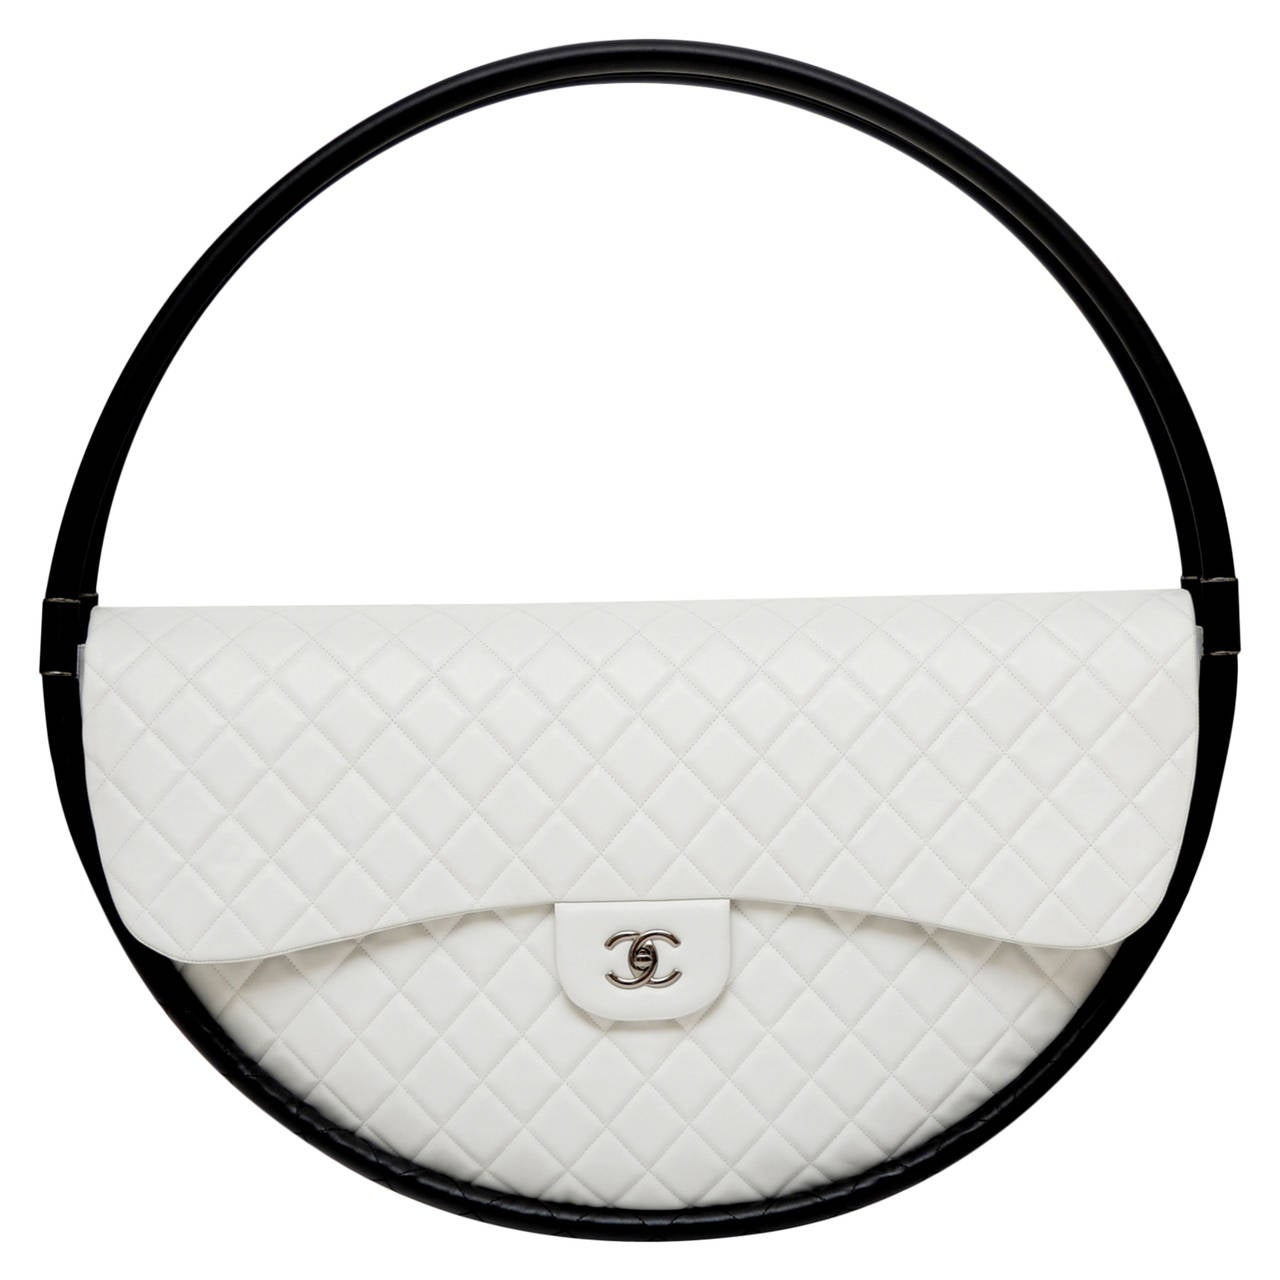 Chanel Art Piece For Display Only Hula Hoop Runway X-Large Bag Limited, 2013 For Sale